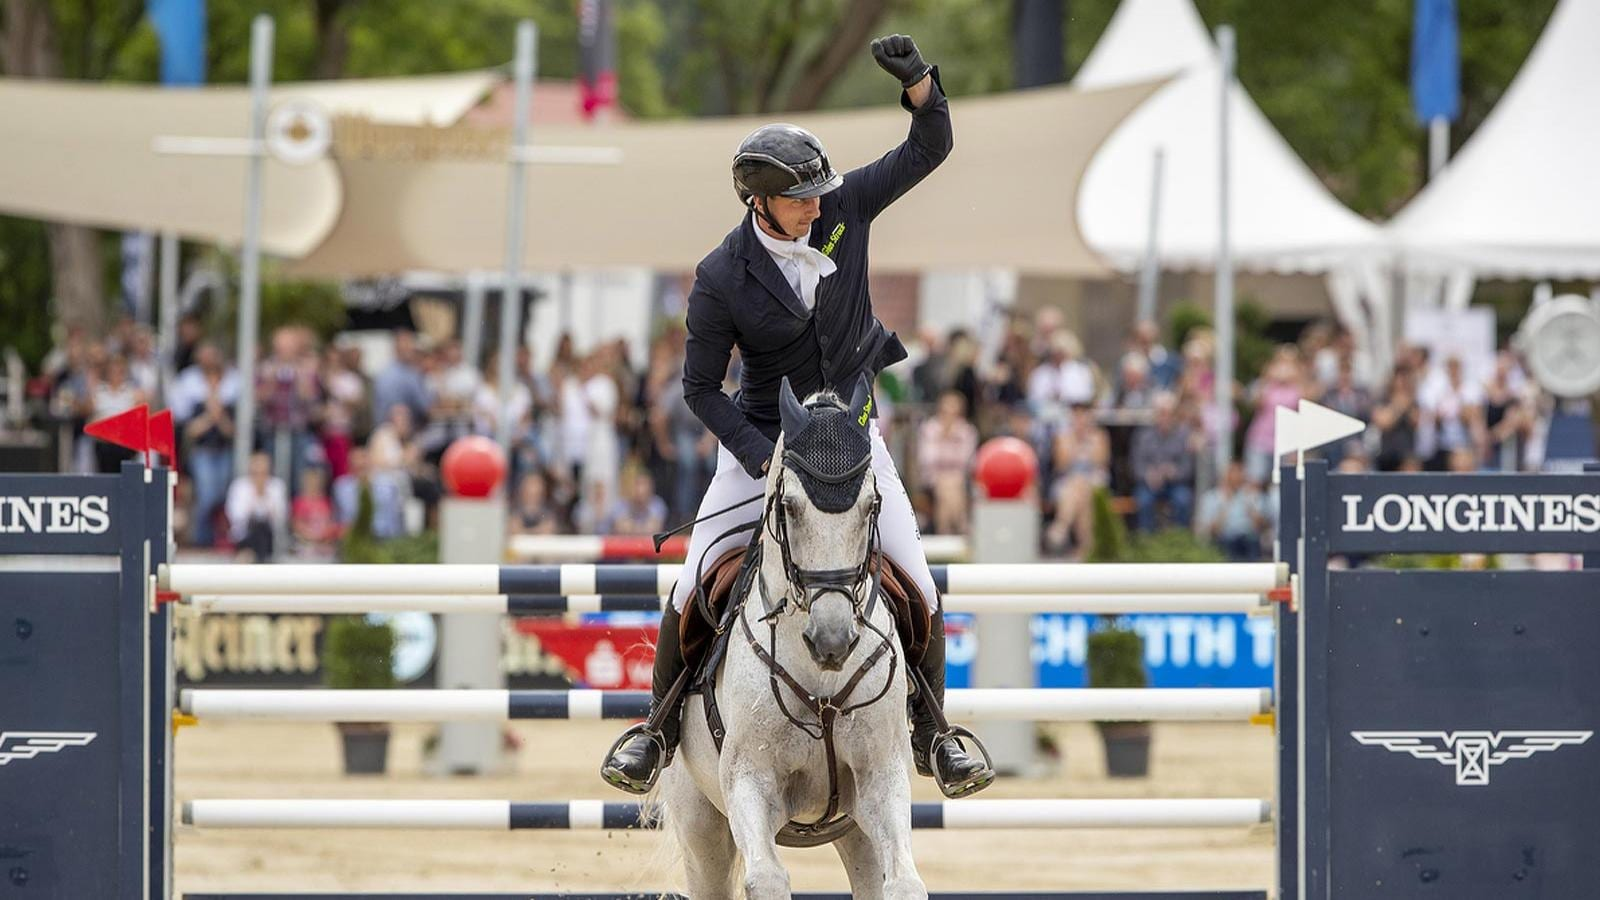 Longines Balve Optimum; Jumping; 2019